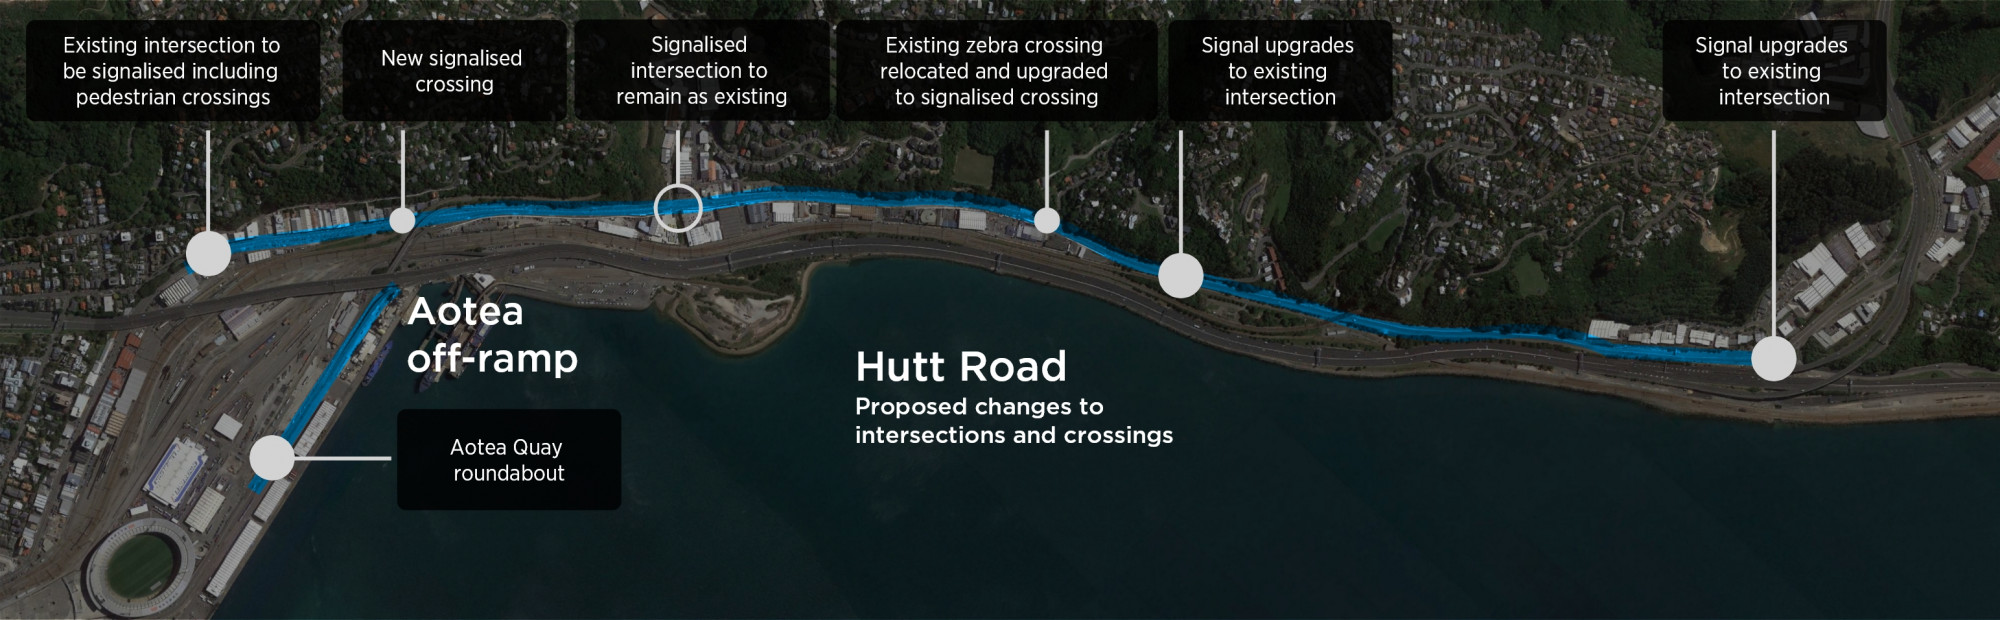 HR intersections and crossings map